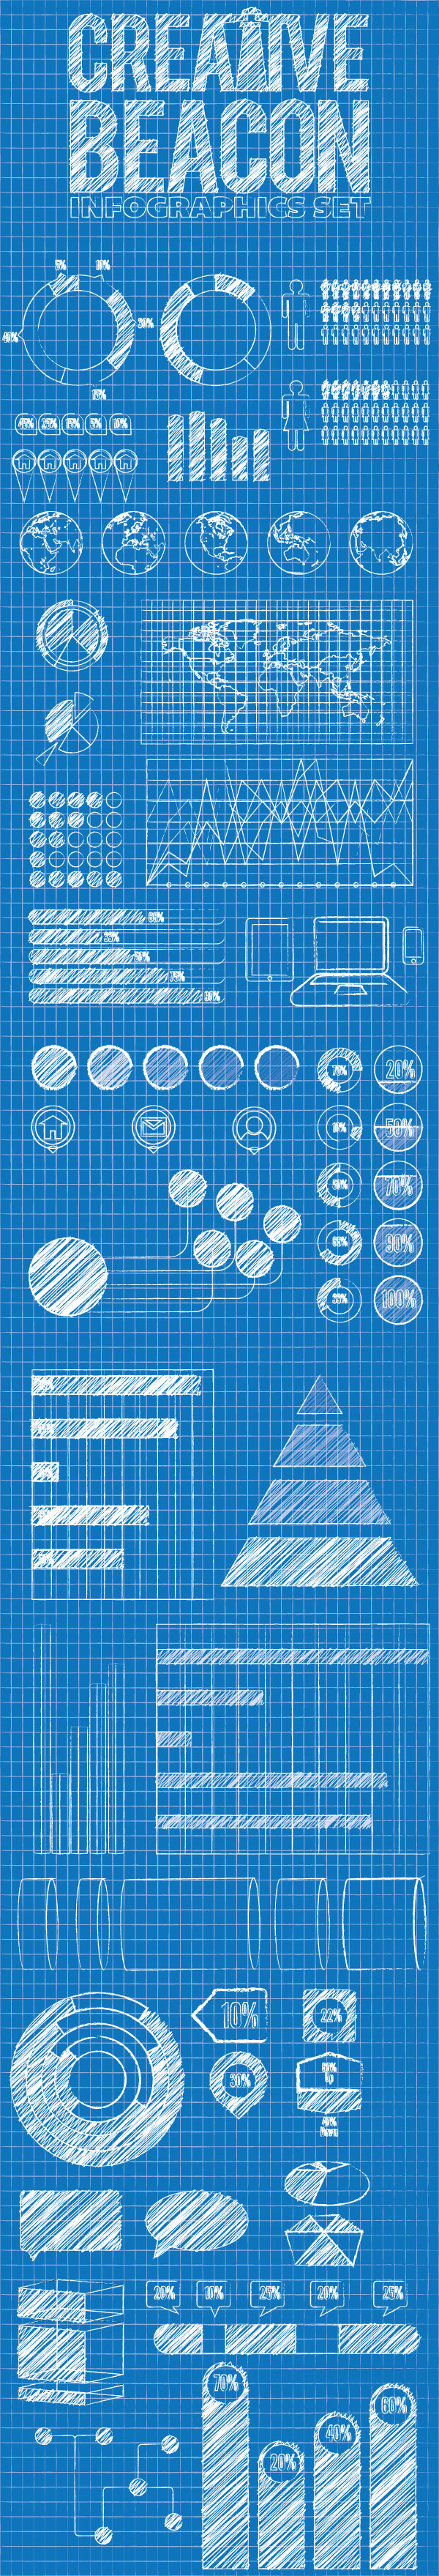 blueprint infographic elements